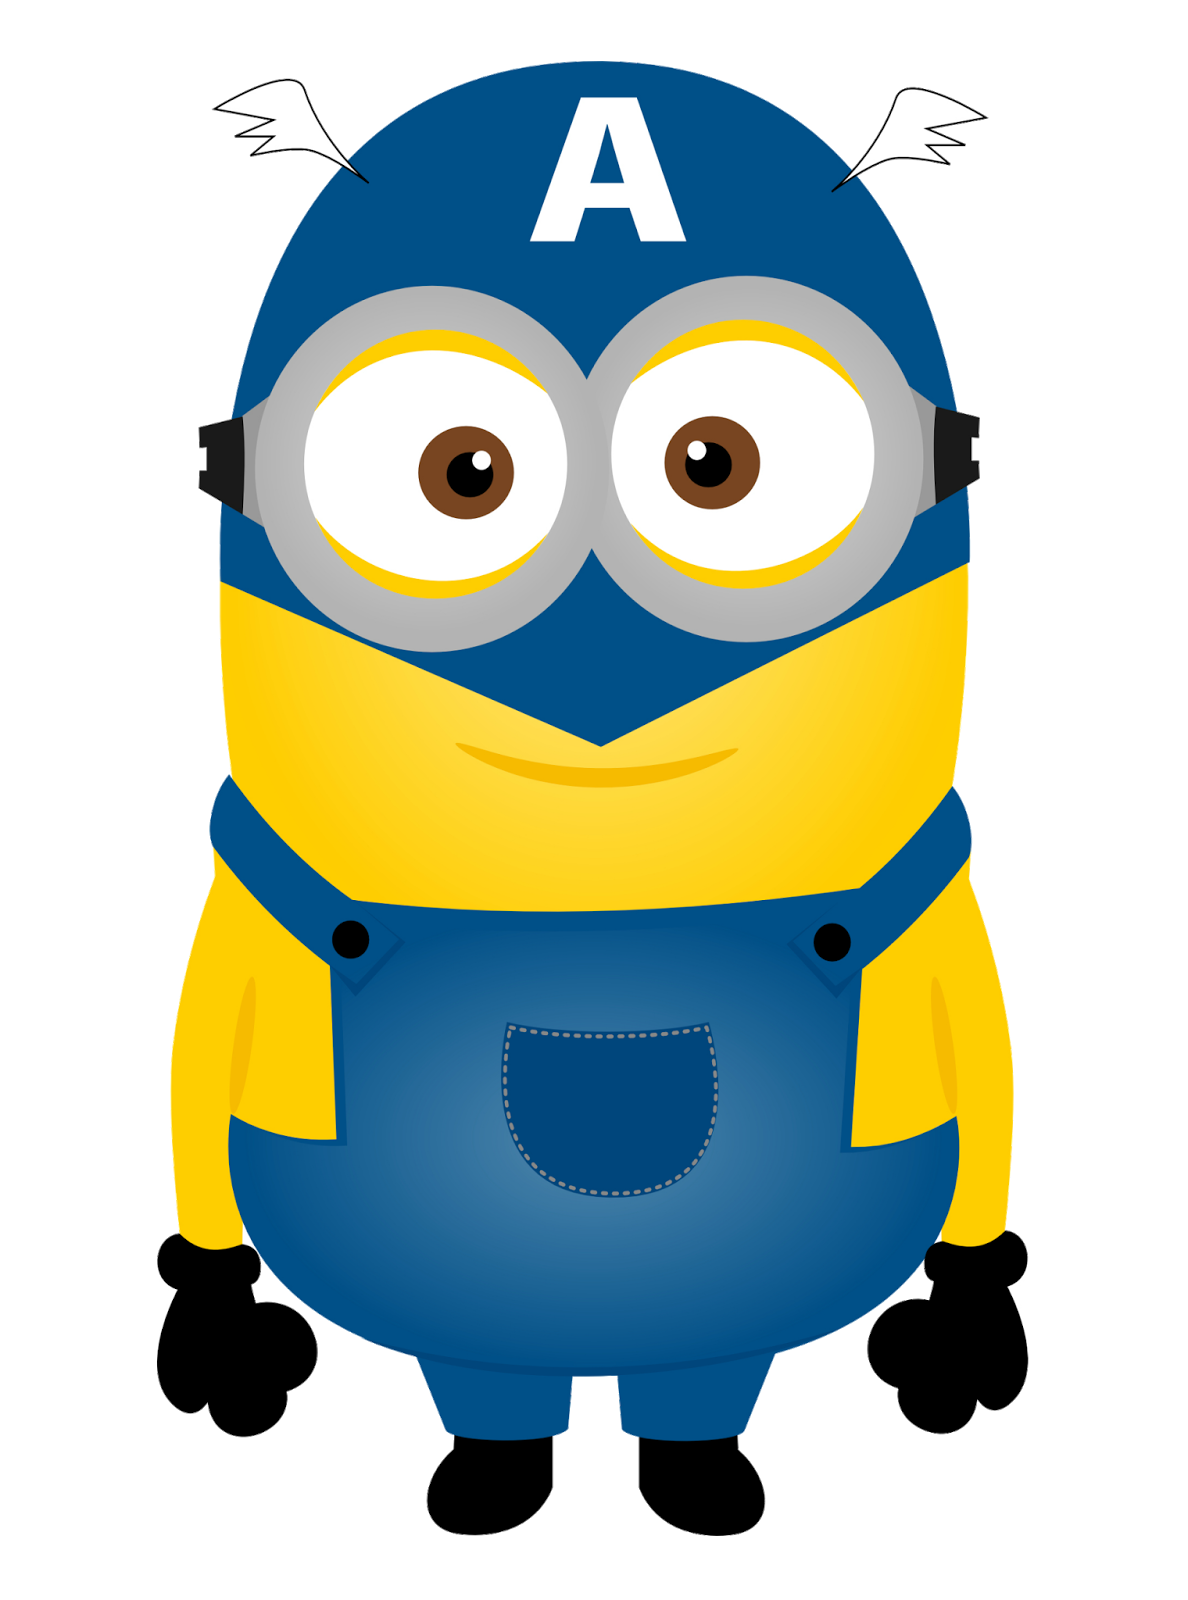 Halloween minion clipart svg transparent library iZJ2UkNsyflSk+(1).png (1188×1600) | Schools | Pinterest ... svg transparent library